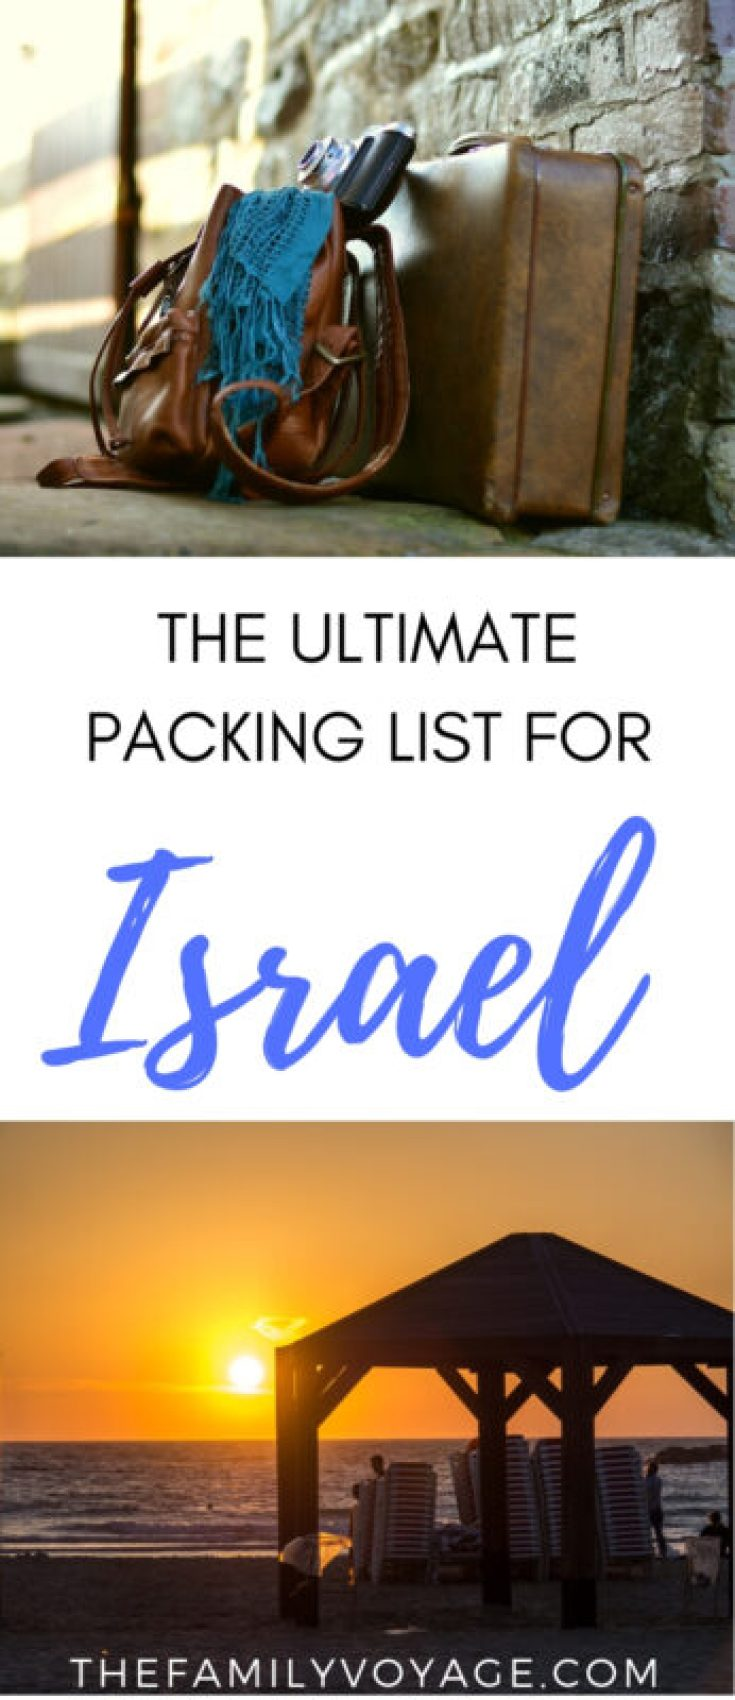 Wondering what to pack for Israel? We've got your Israel packing list for every season, along with weather, Jerusalem dress code issues and more. CLICK to read now and PIN IT for later! #Israel #Jerusalem #TelAviv #packing #packinglist #capsulewardrobe #femaletravel #travel #winter #spring #summer #fall